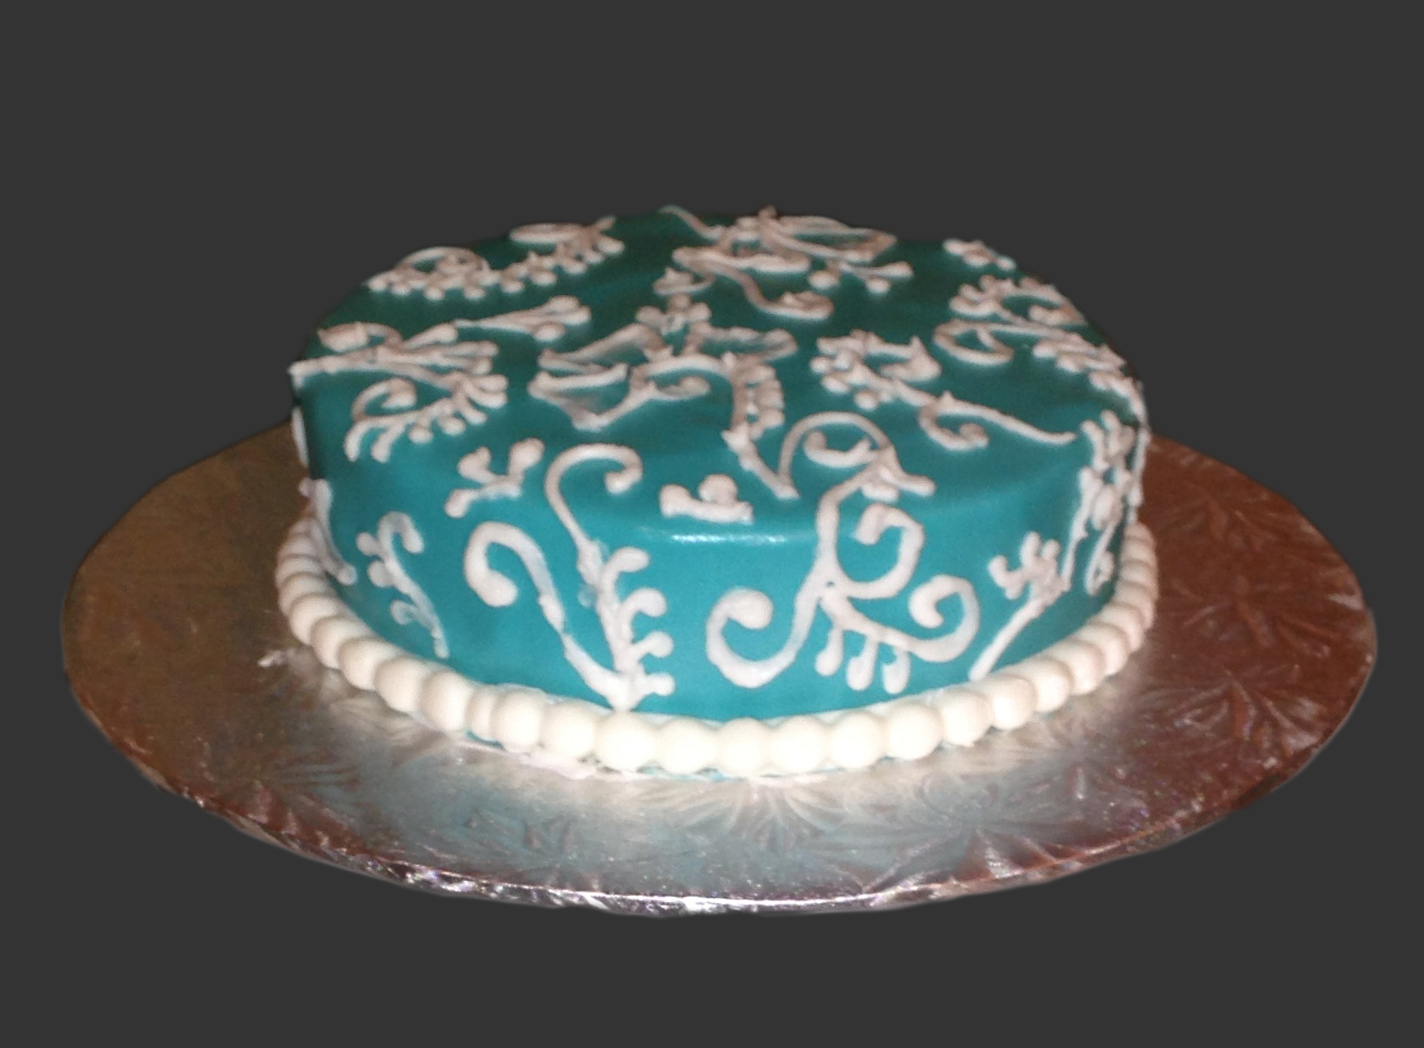 Teal Piped Cake